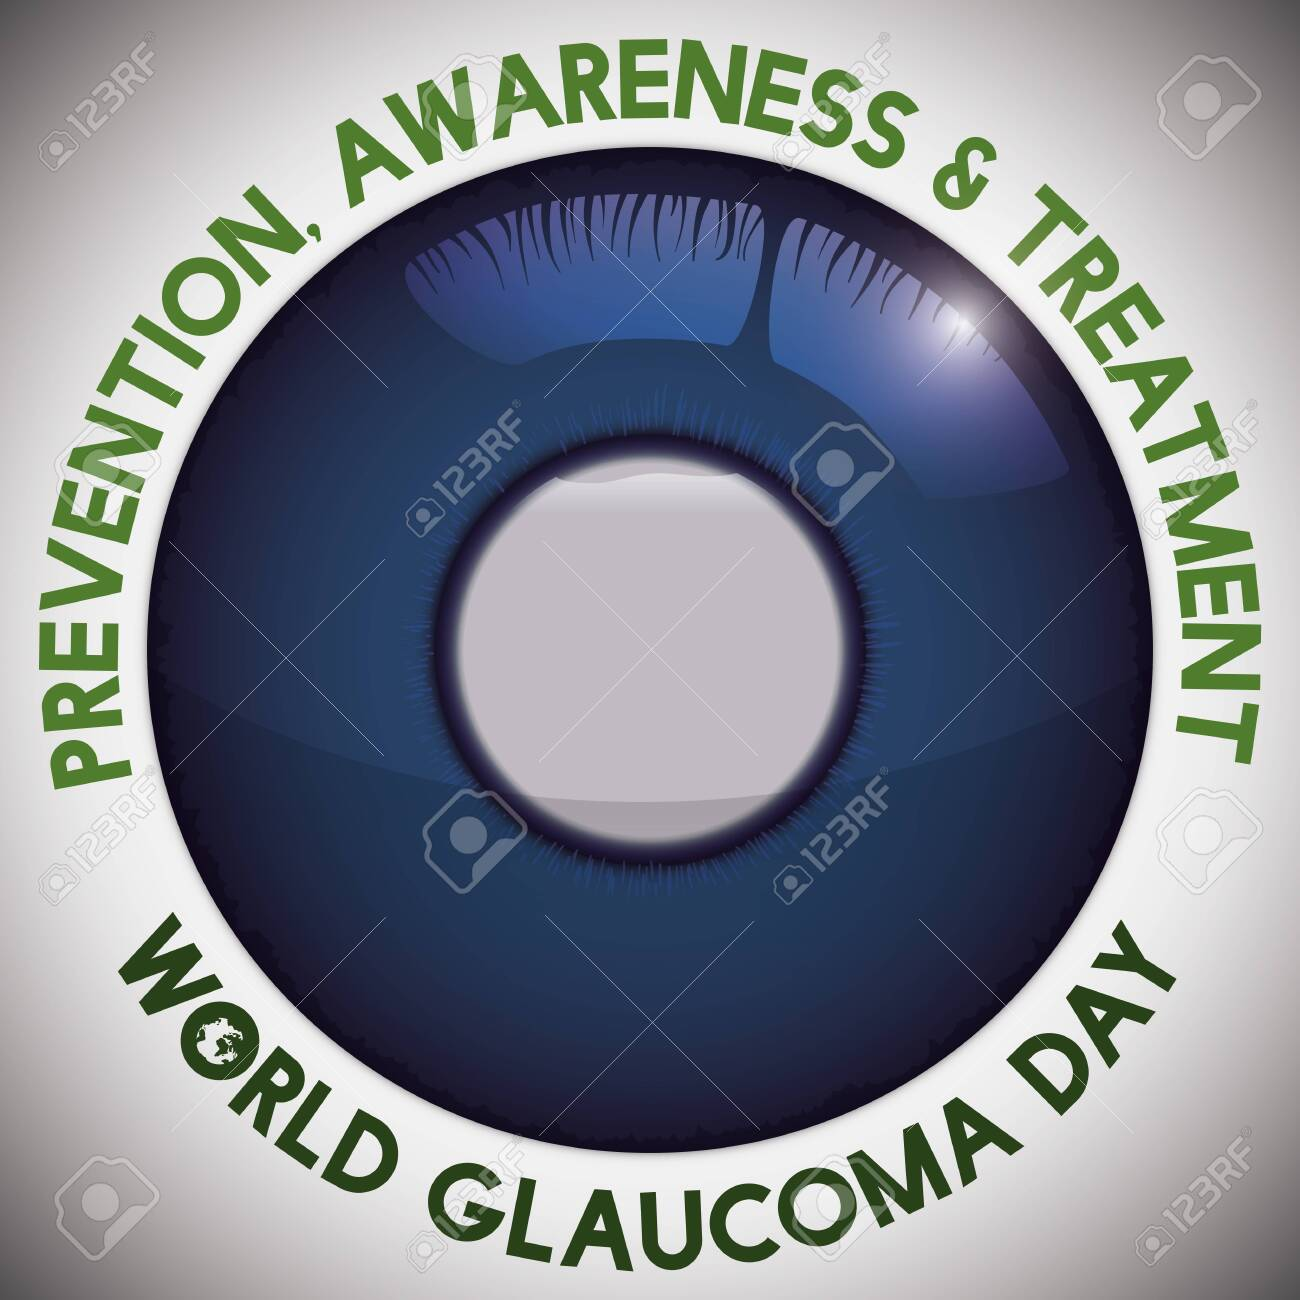 Poster for World Glaucoma Day with advices for prevention and treatment and an eye iris with cloudy effect in the pupil: a sign of this ocular disease and blindness. - 150245551